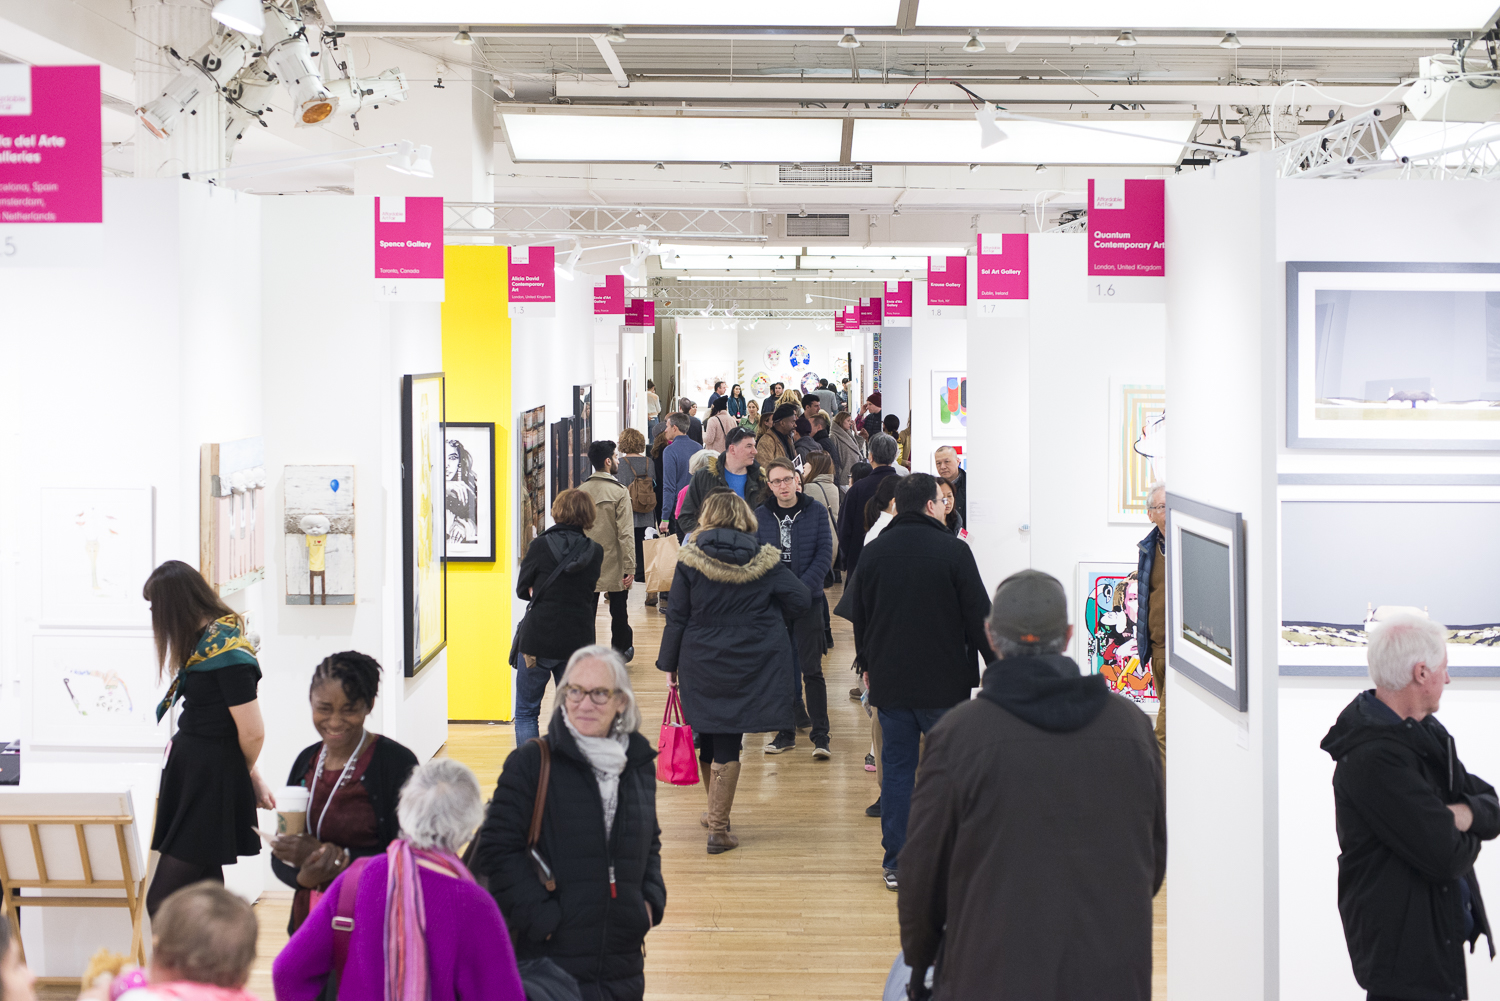 Ready to purchase art? Check out these tips from the Affordable Art Fair NY about shopping for art on a budget to find the right piece for you.